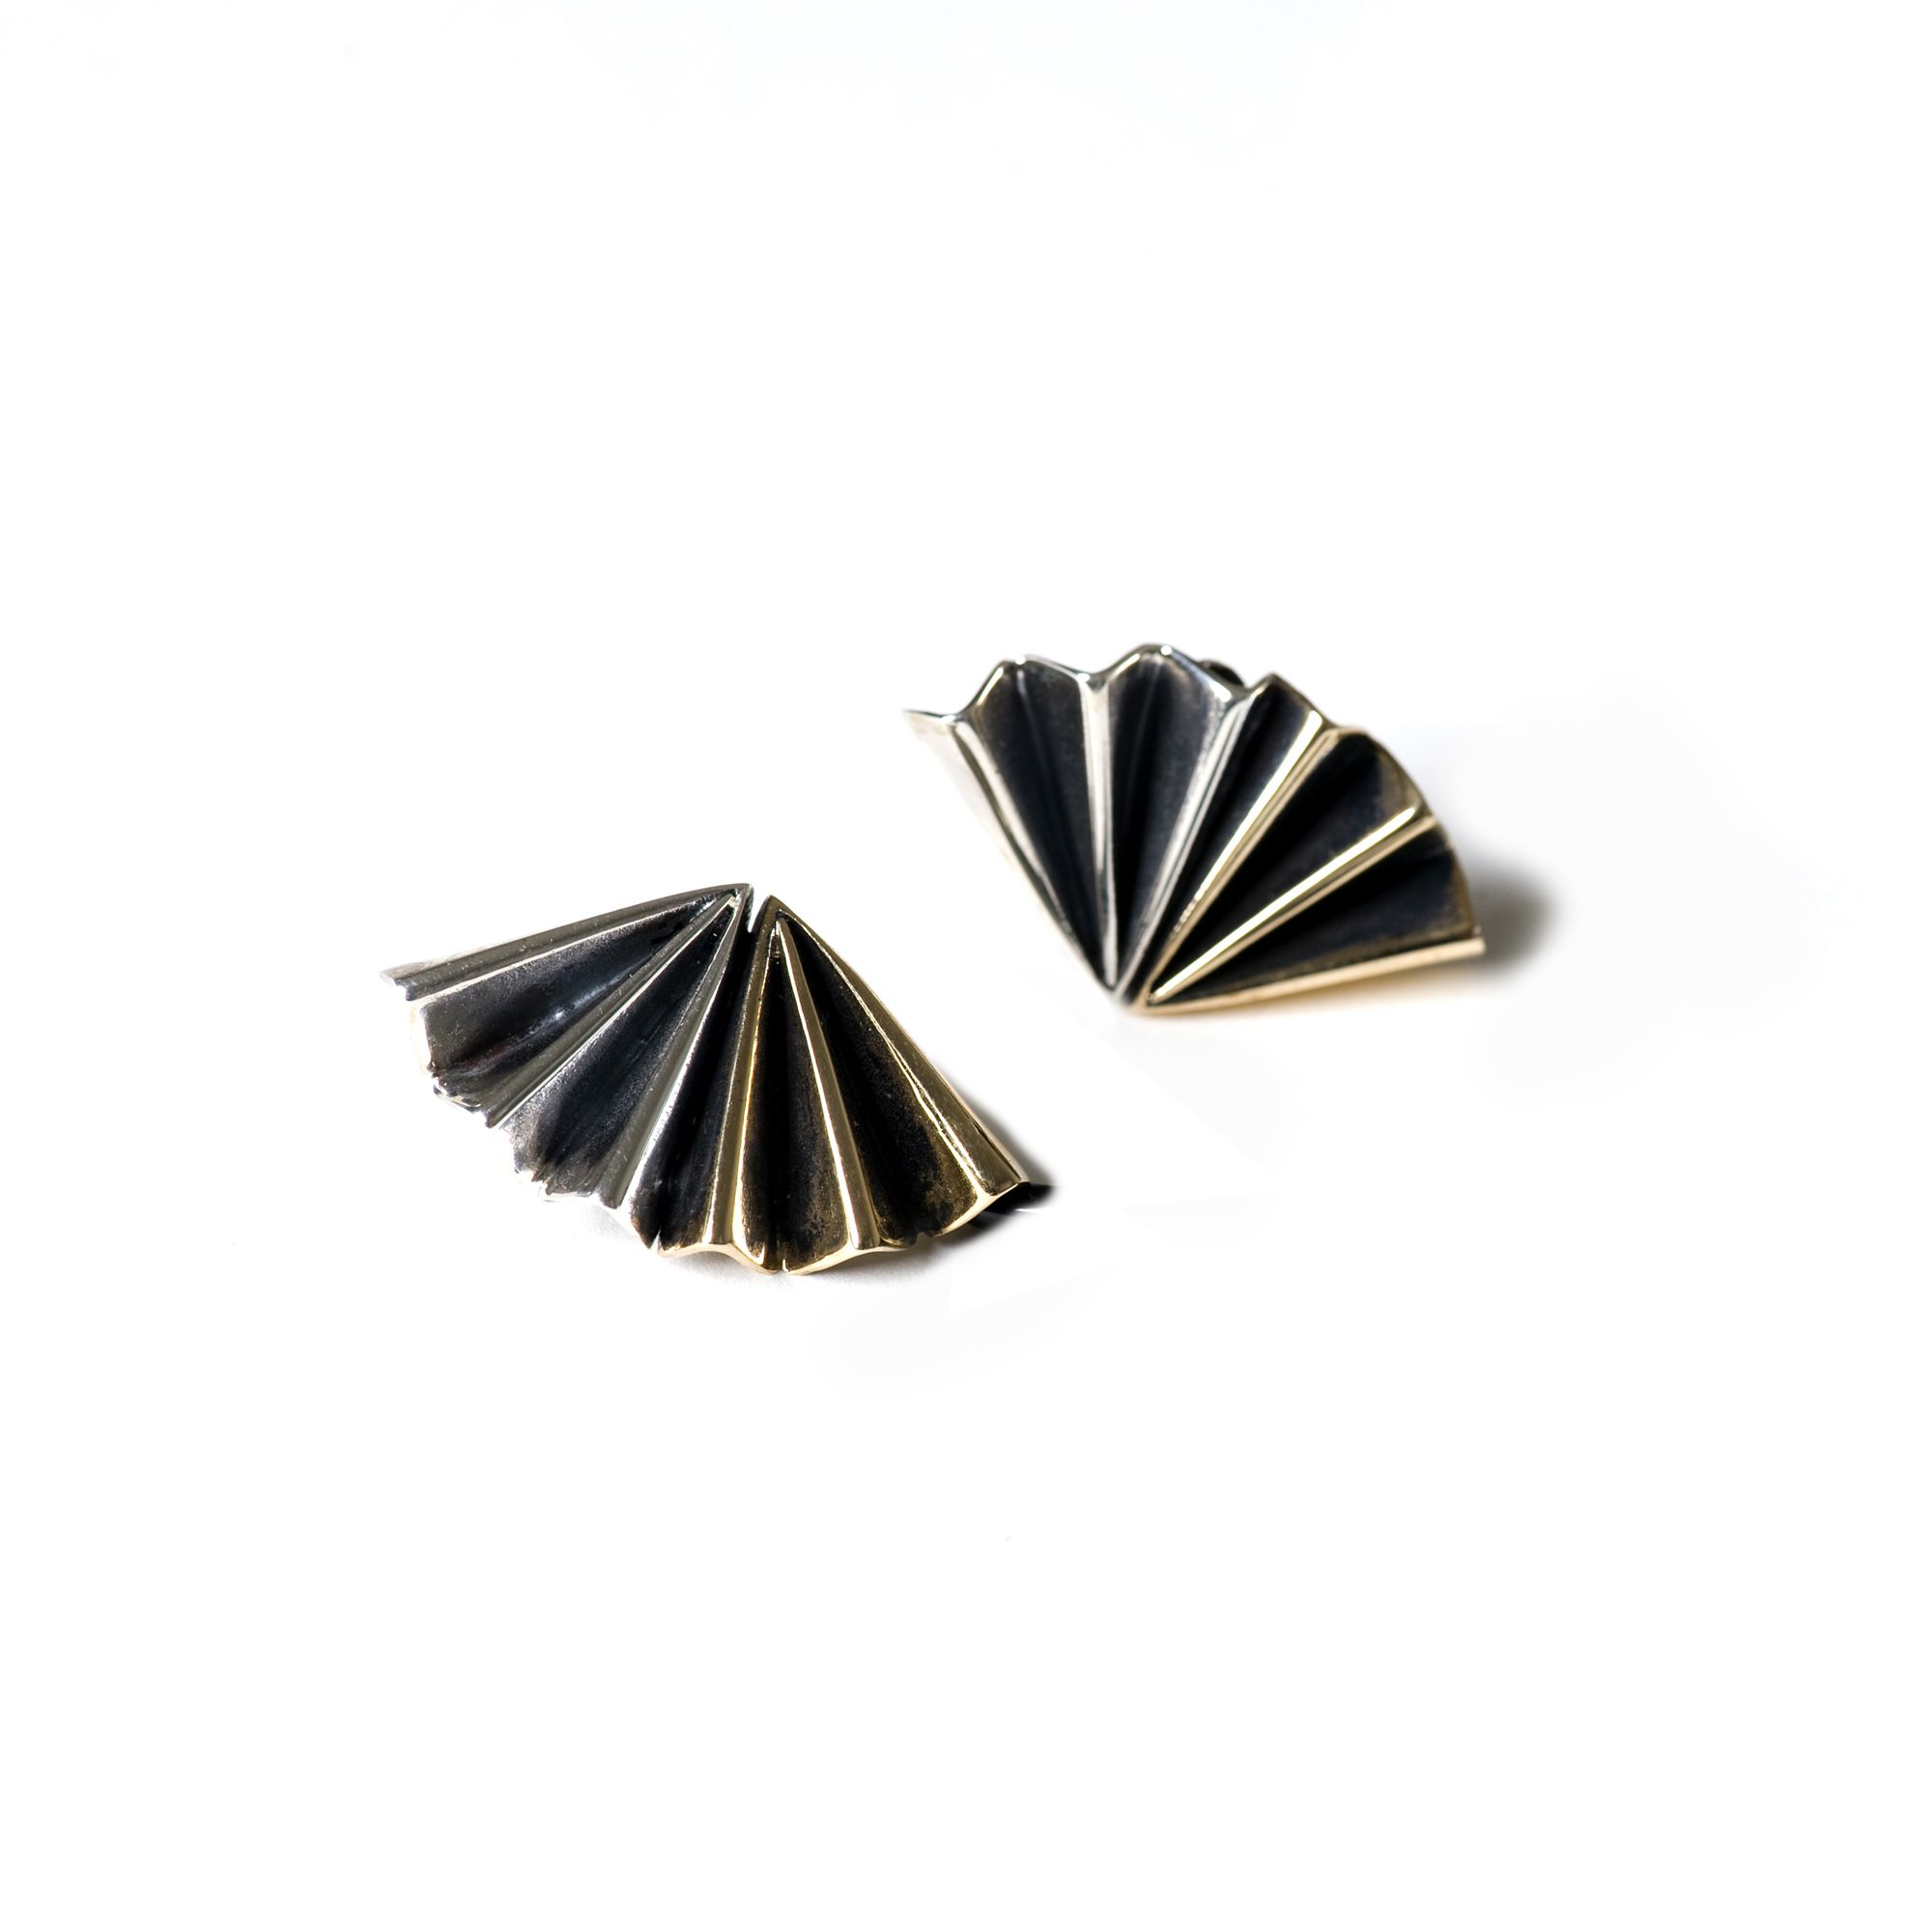 Bi-color 'fan' earrings Earrings in silver and bronze